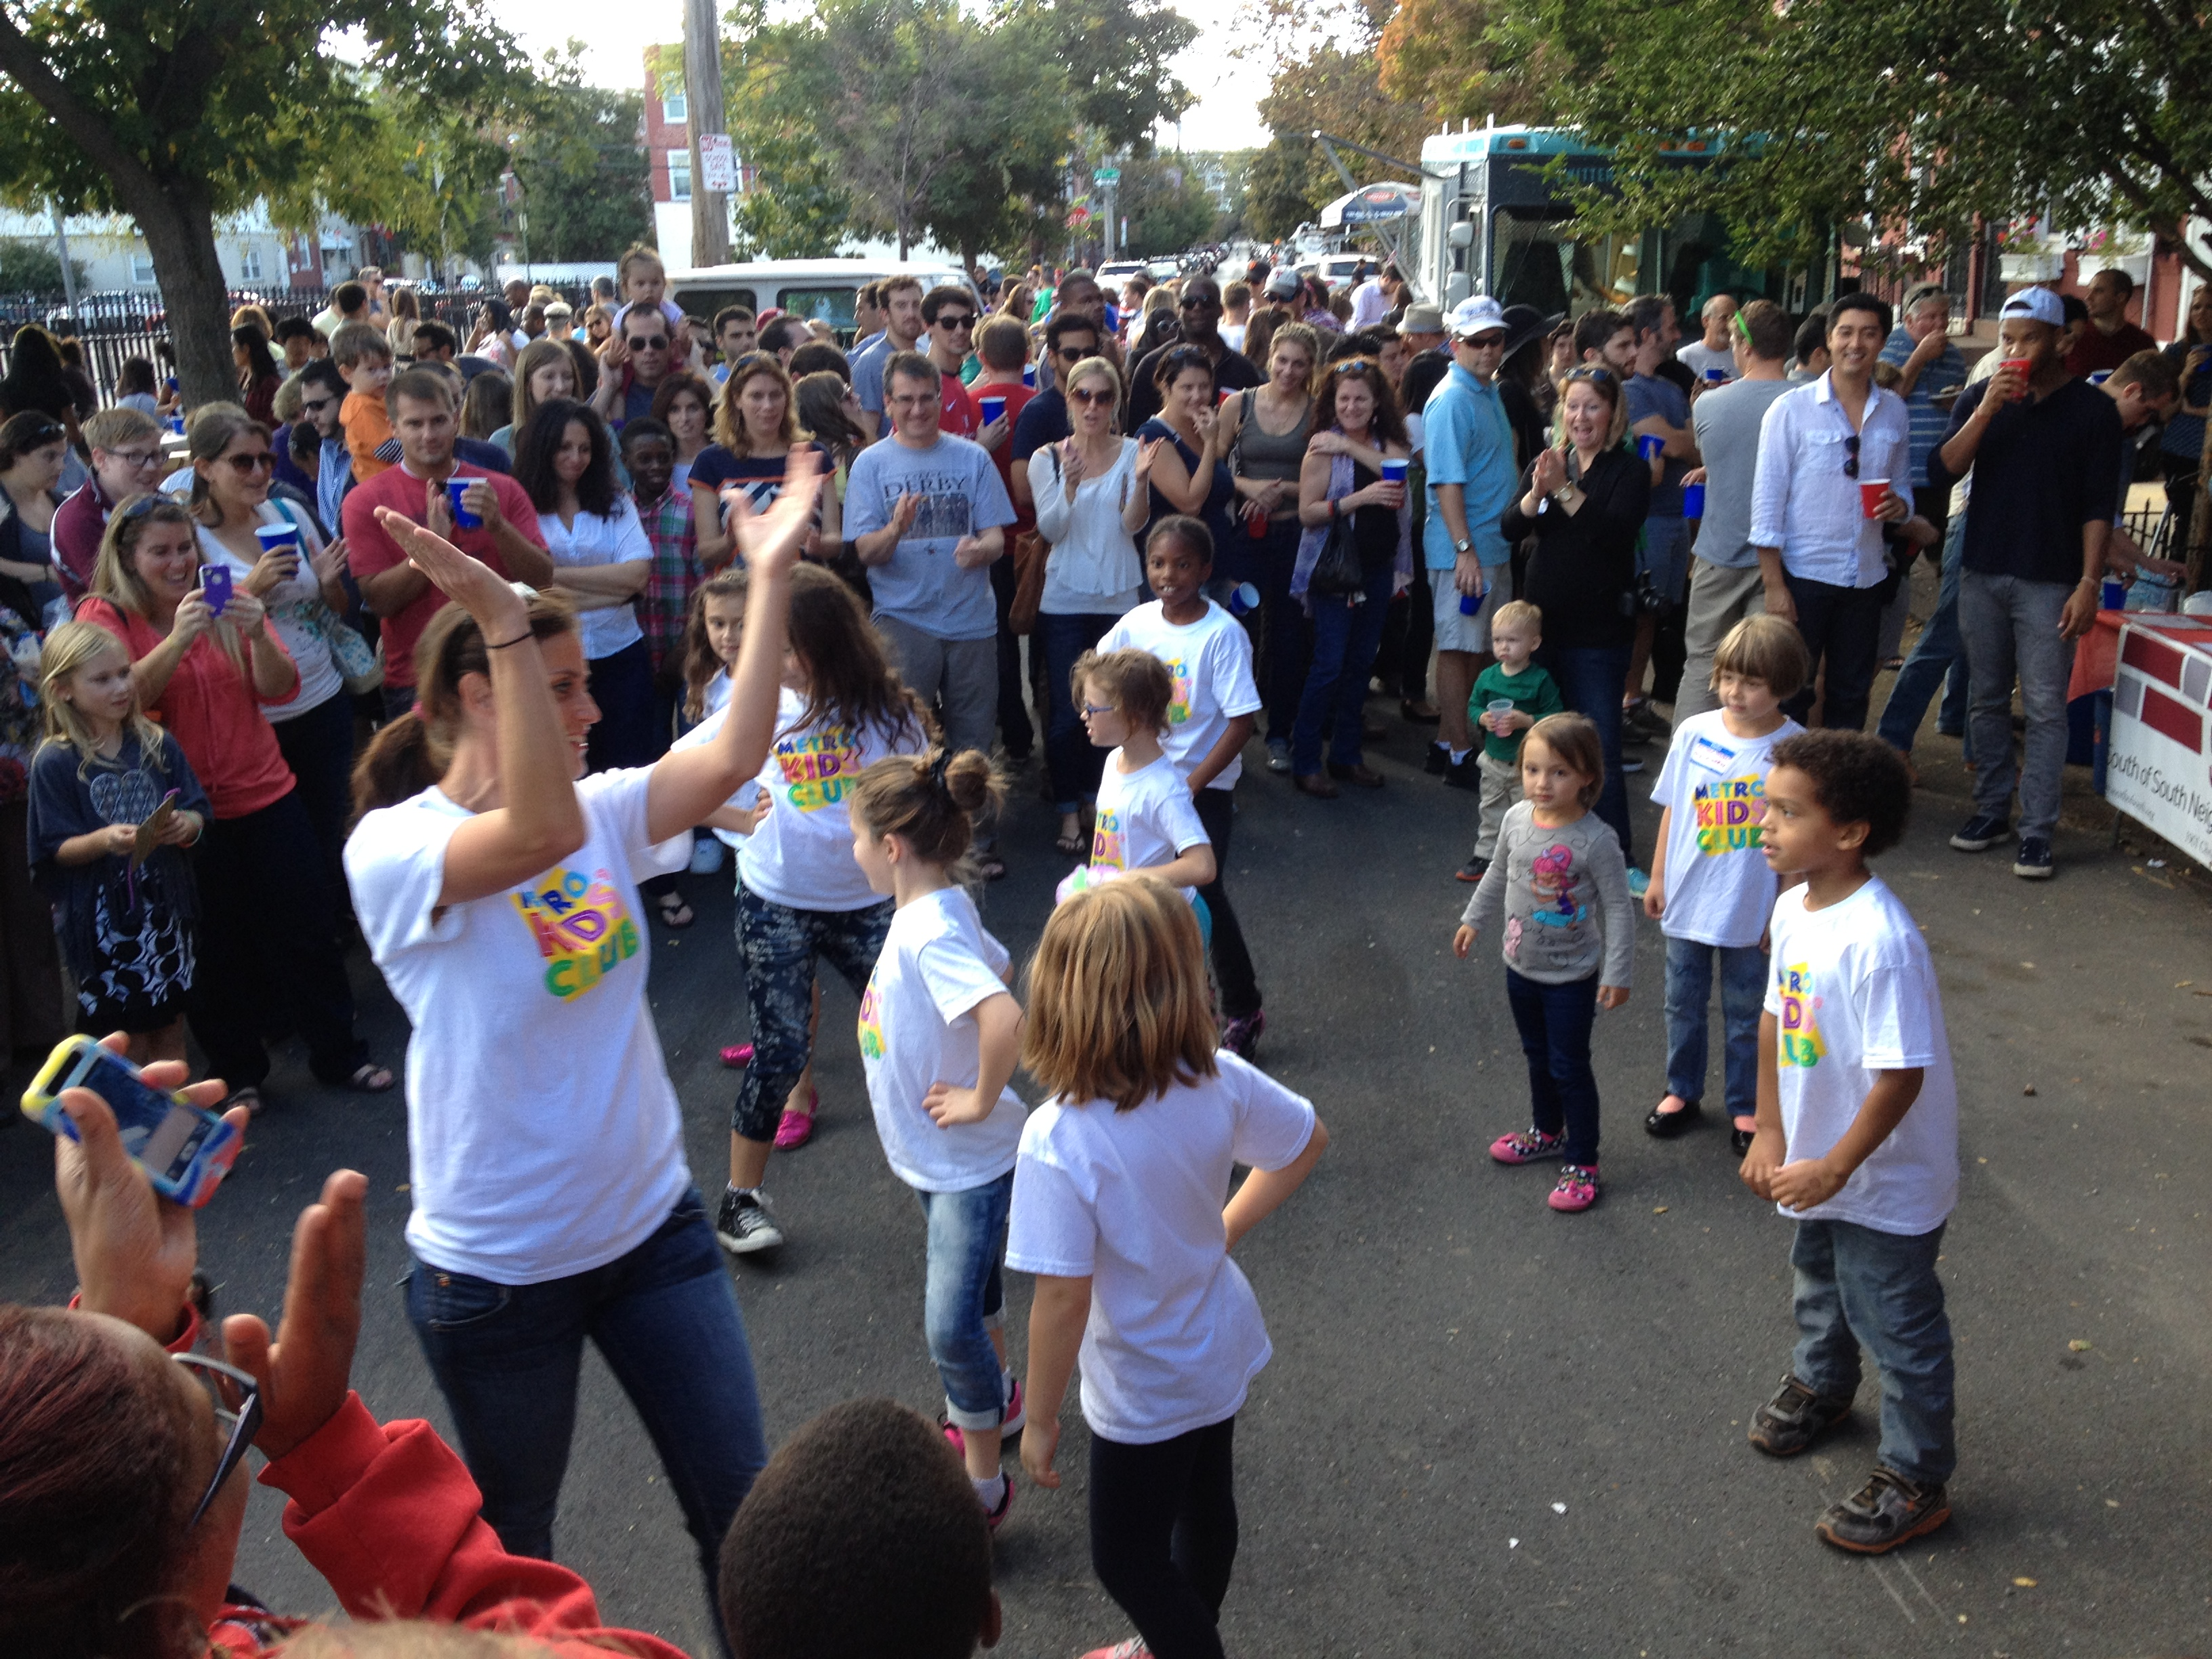 The Metro Kids Club entertains the crowd with a dance routine.